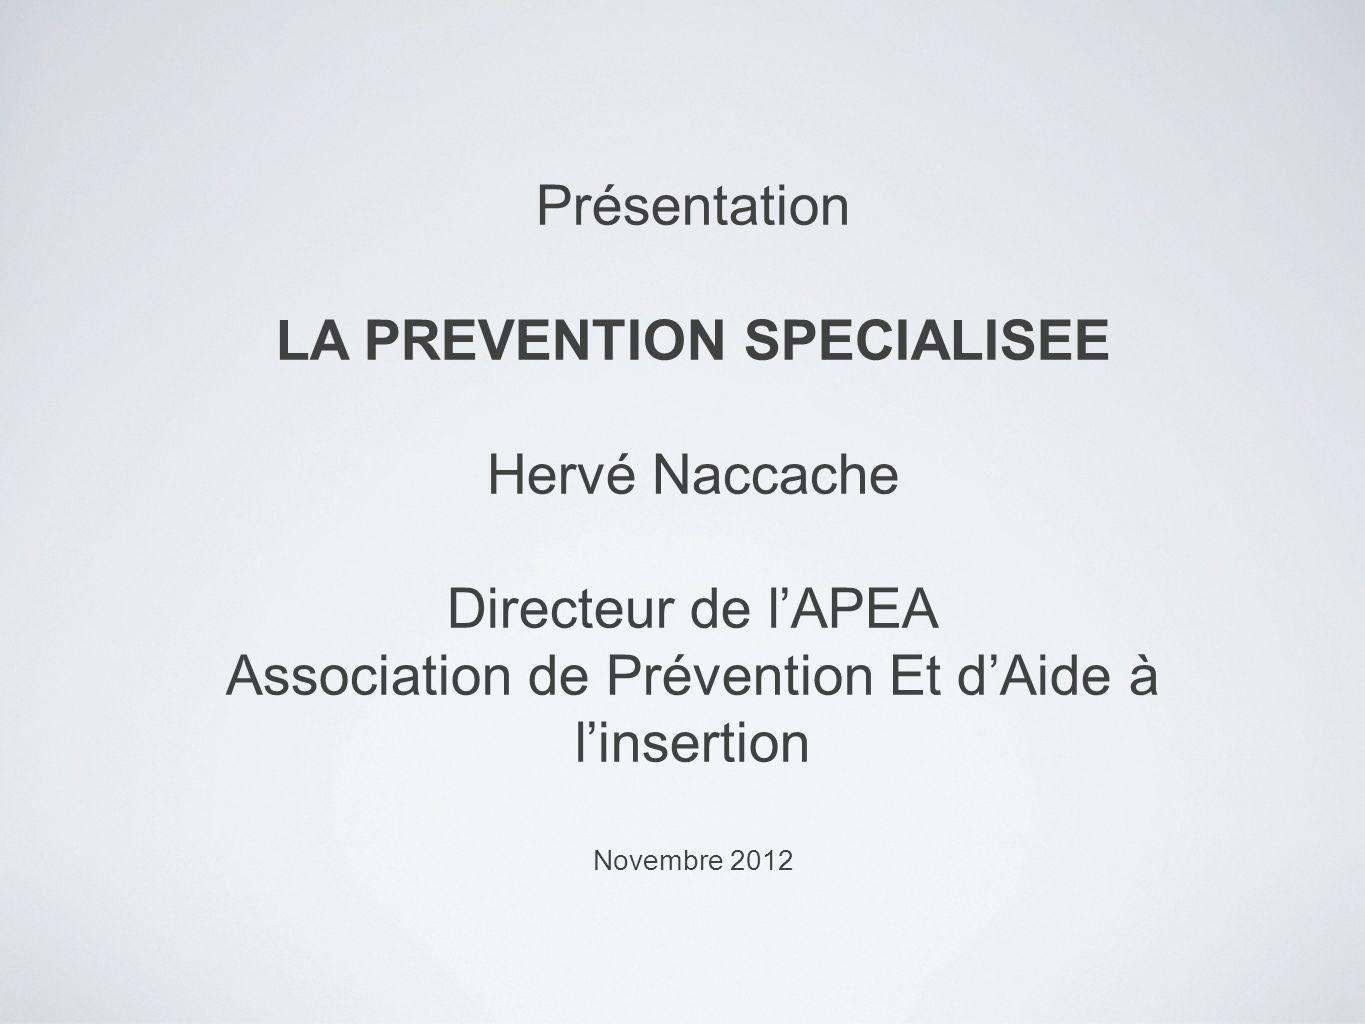 LA PREVENTION SPECIALISEE